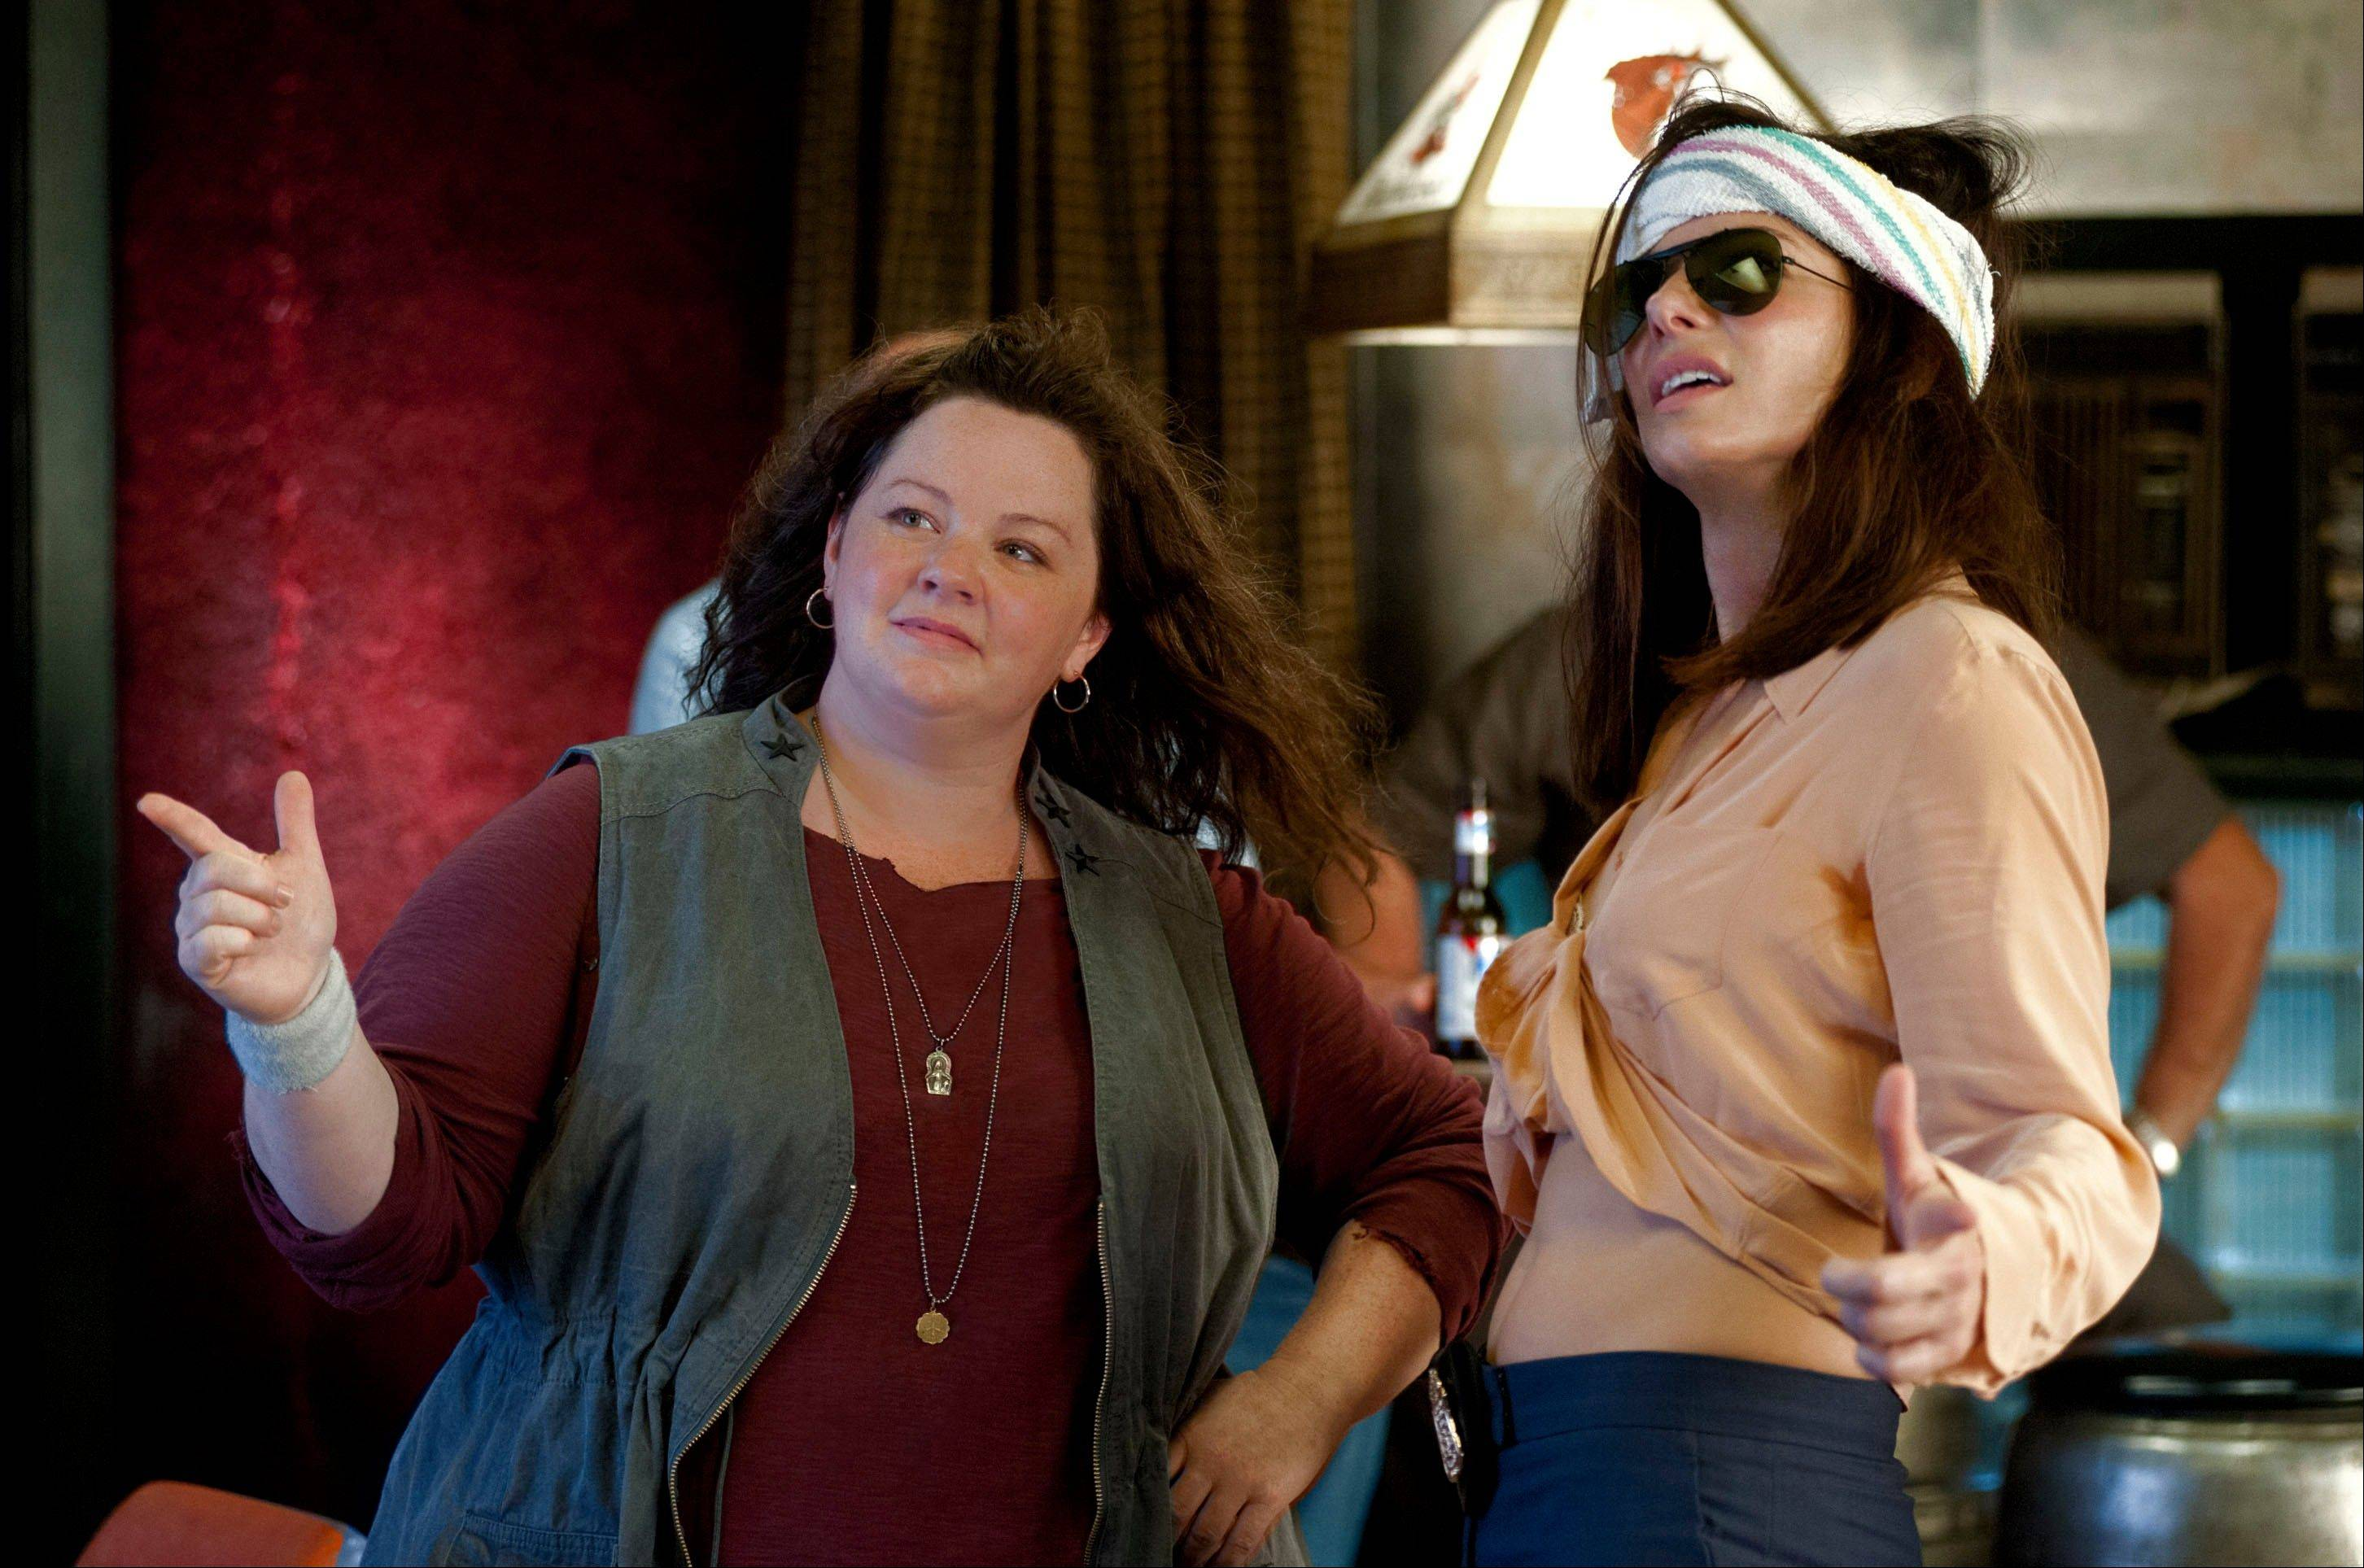 FBI Special Agent Sarah Ashburn (Sandra Bullock), right, teams up with bossy Boston Detective Shannon Mullins (Melissa McCarthy) in �The Heat.� The buddy-cop film brought in $40 million in its opening weekend in theaters.